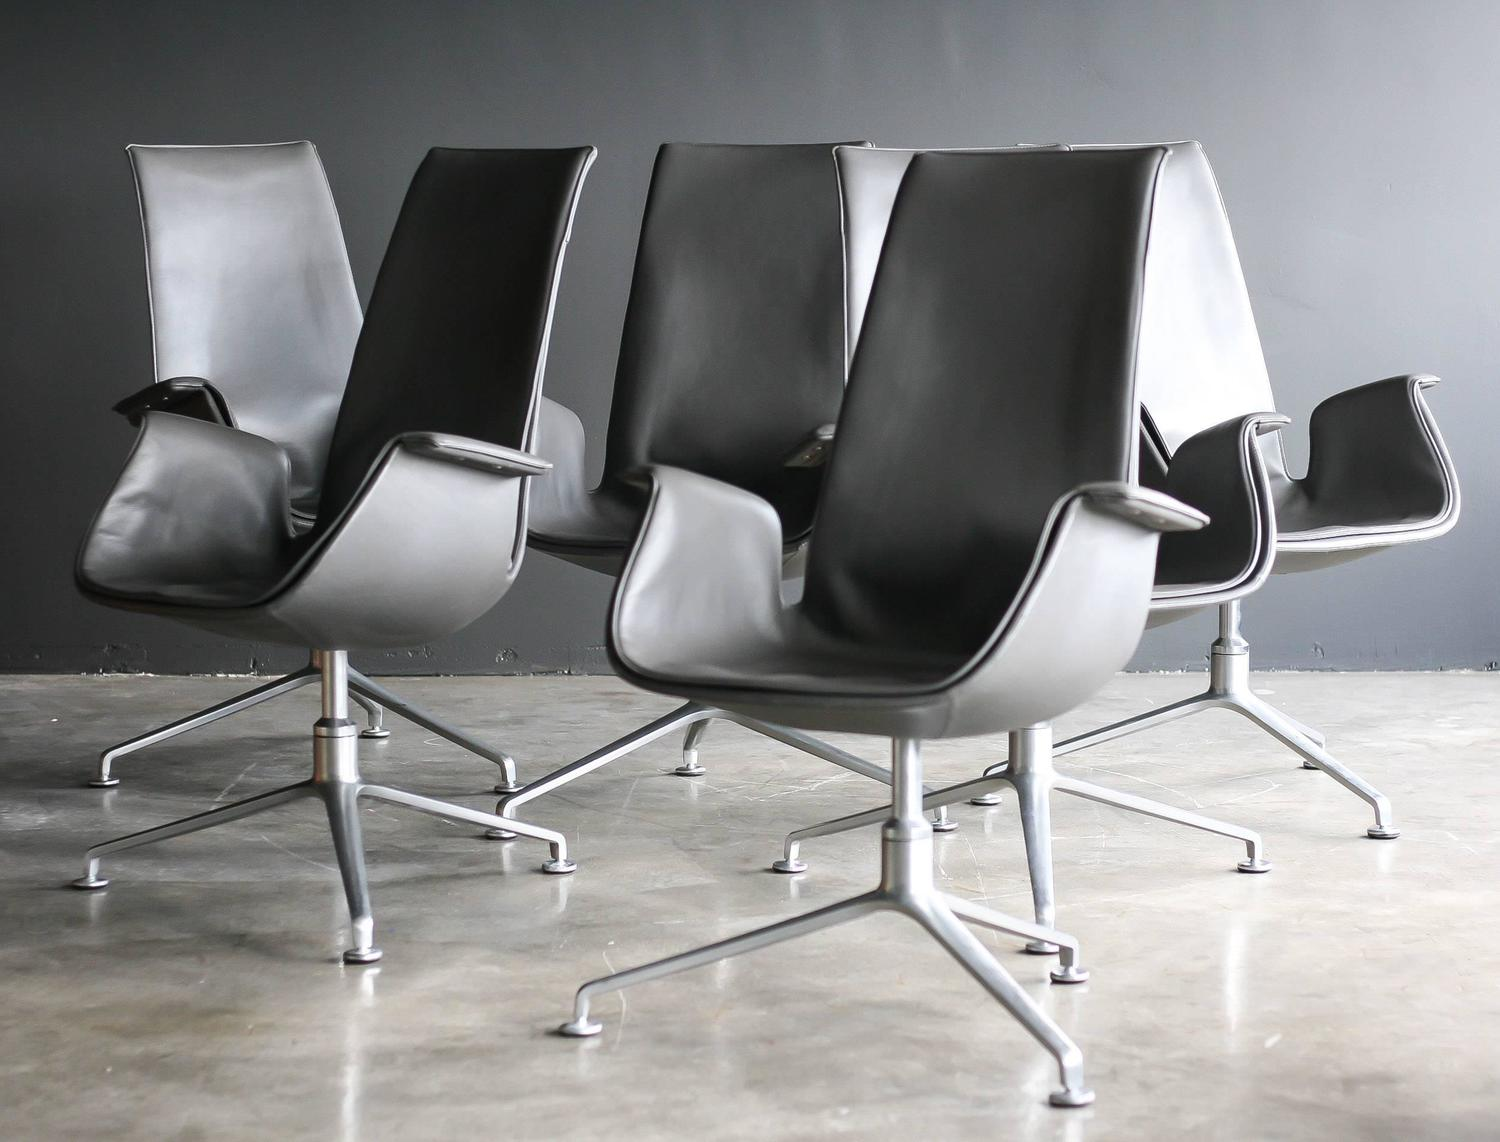 conference chairs for sale ikea chair covers review fk 6725 by preben fabricius and jørgen